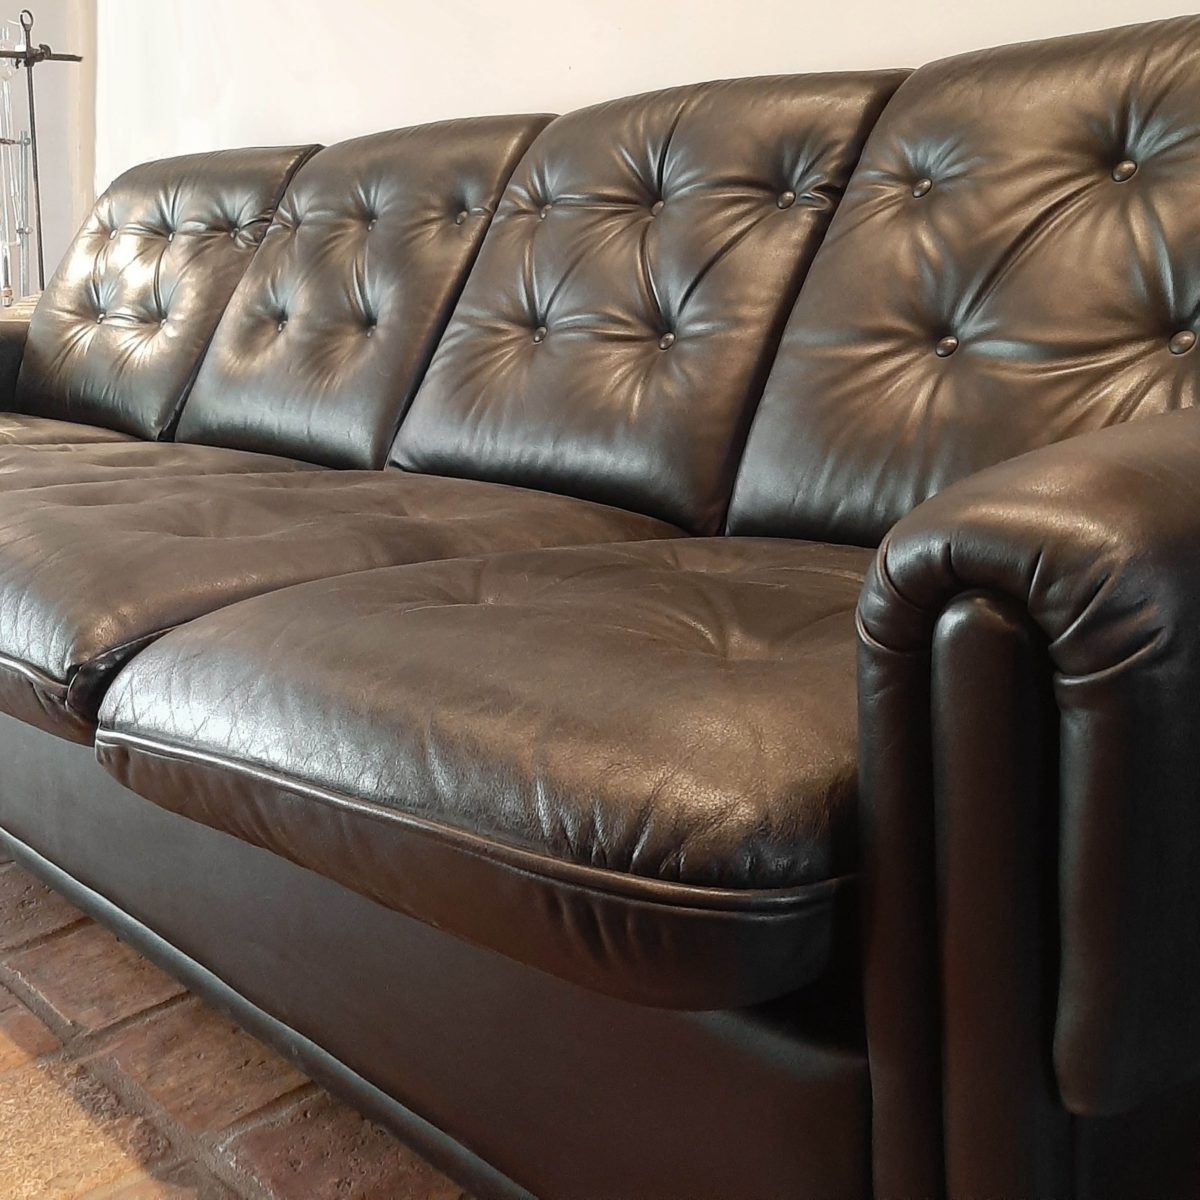 Vintage Four Seater Sofa Made Of Black Leather – Piet Jonker With 4 Seat Leather Sofas (View 3 of 15)